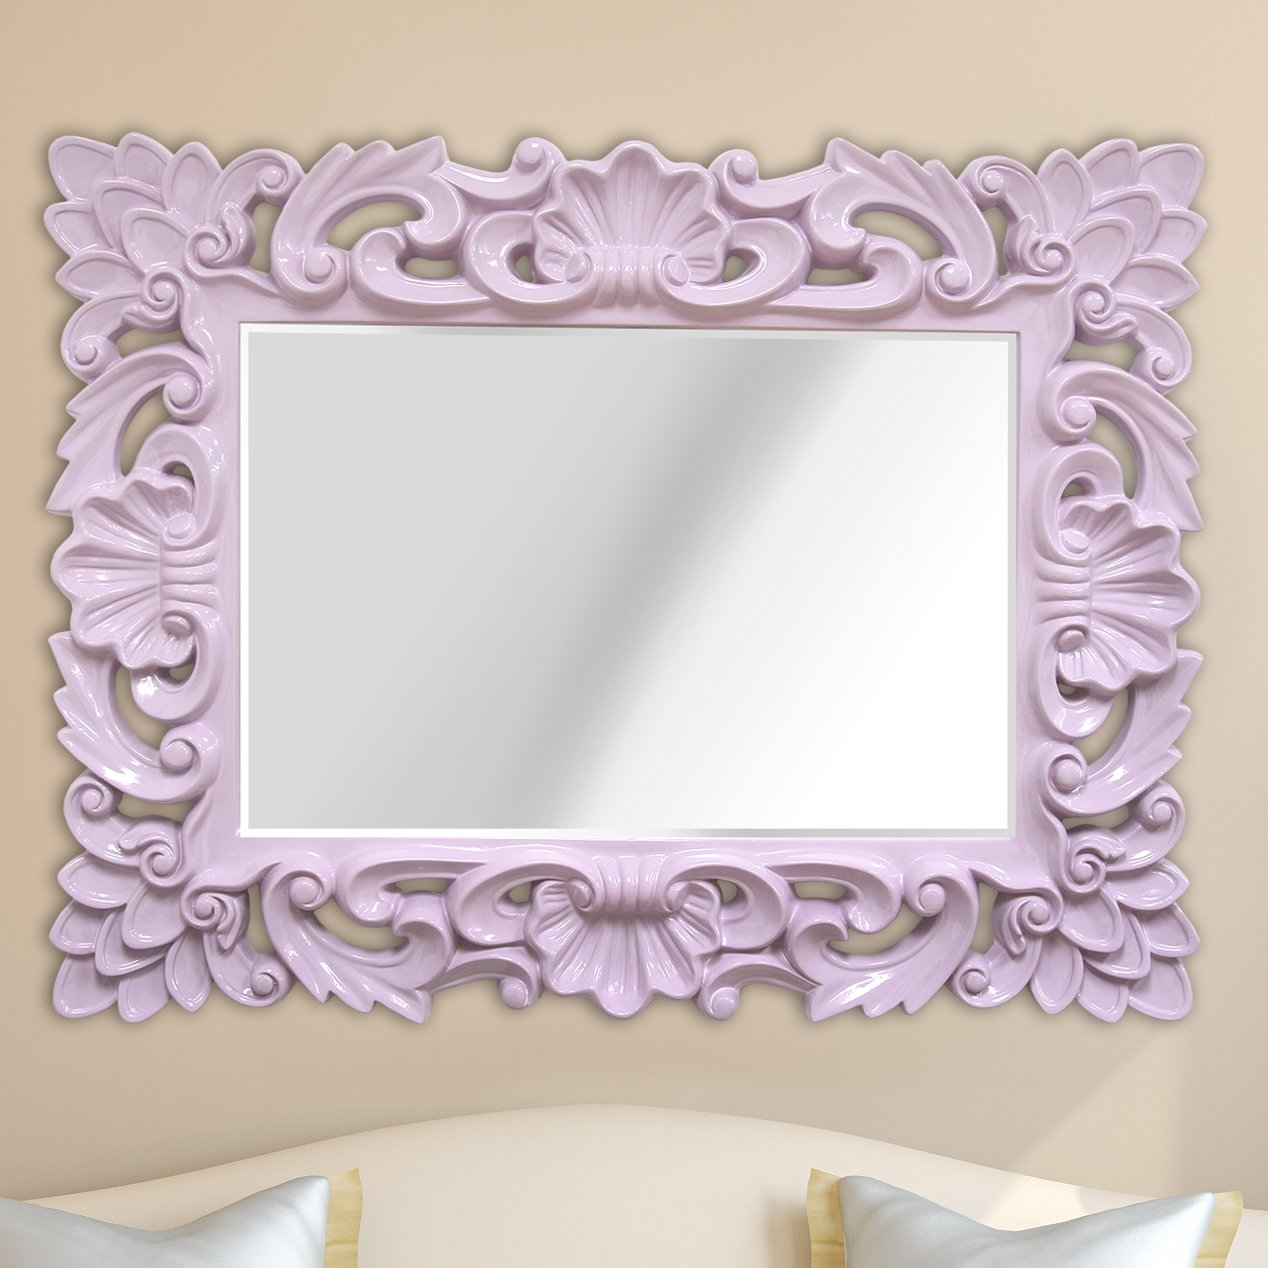 Stratton Home Decor Elegant Ornate Wall Mirror Reviews Wayfair Throughout Ornate Wall Mirror (Image 11 of 15)